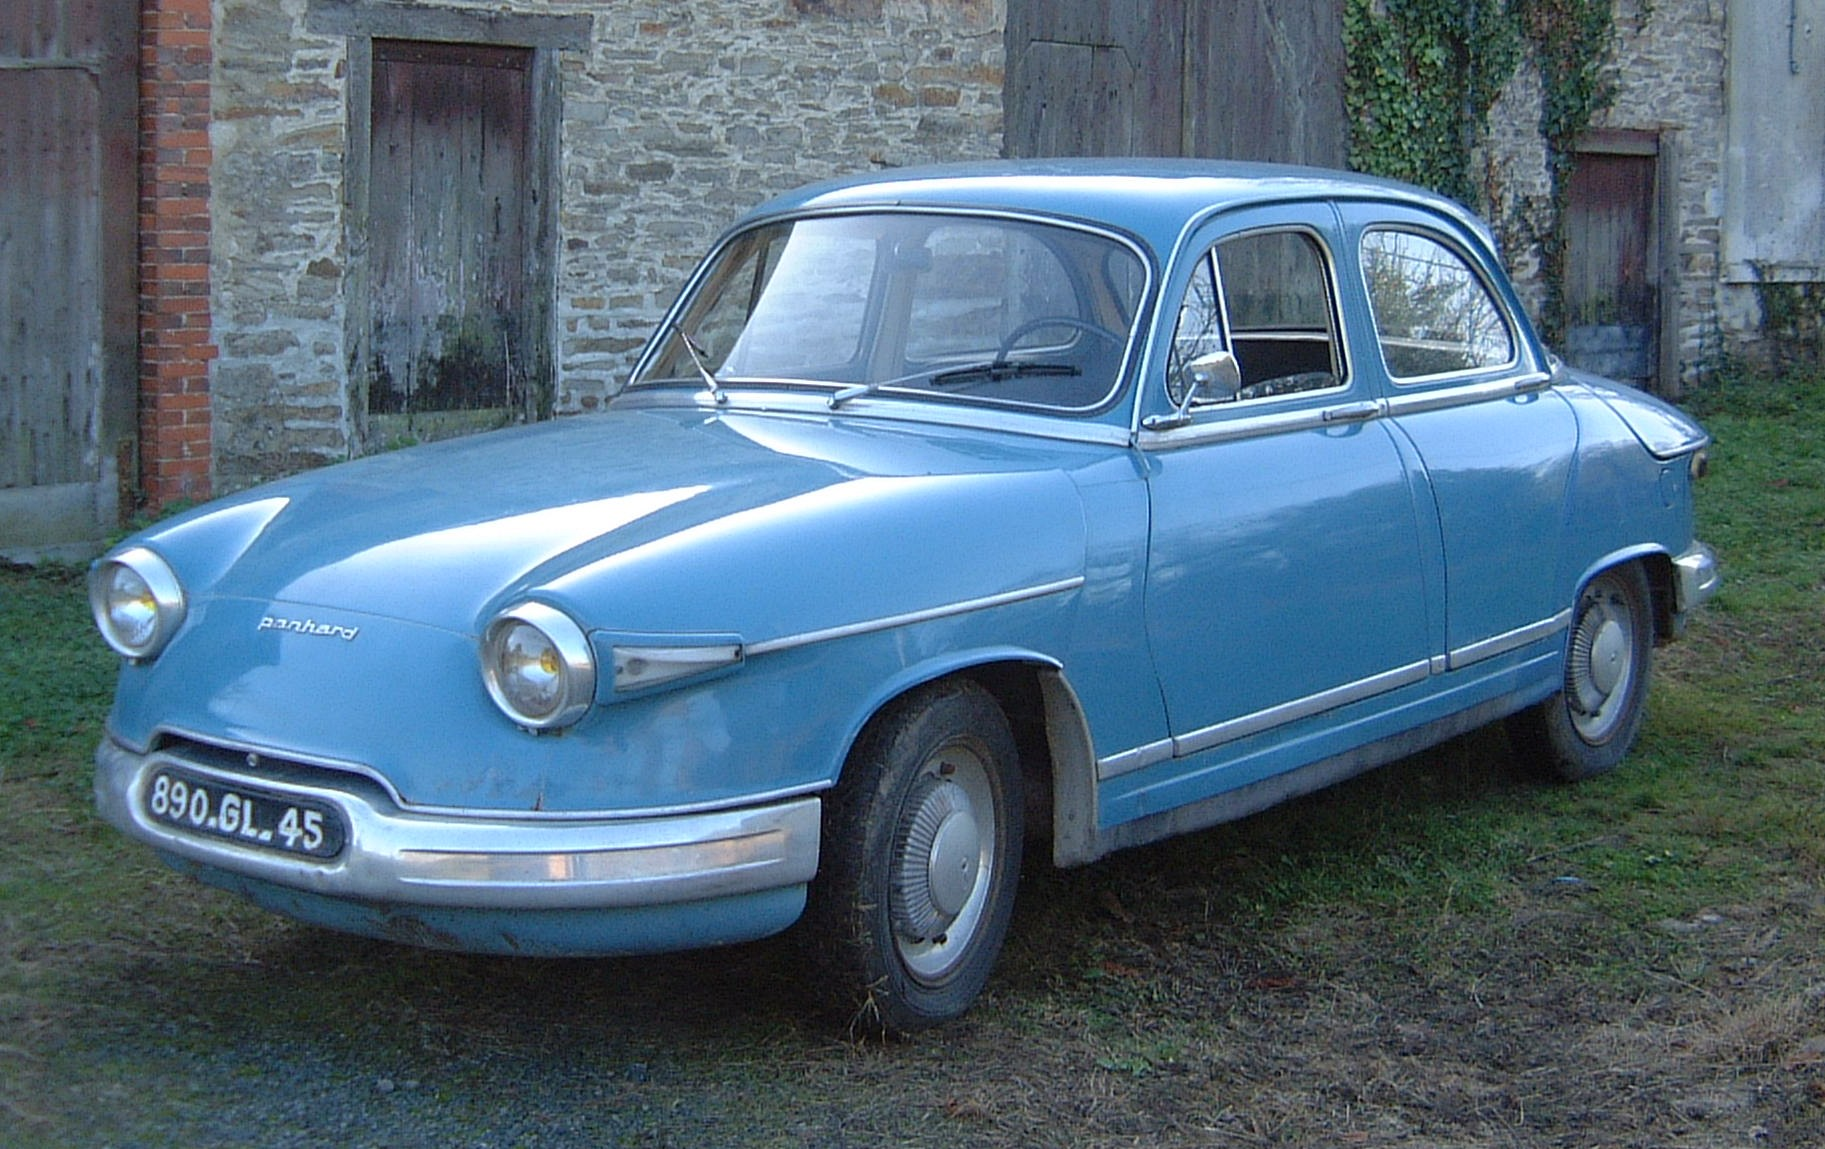 Panhard coupe photo - 8